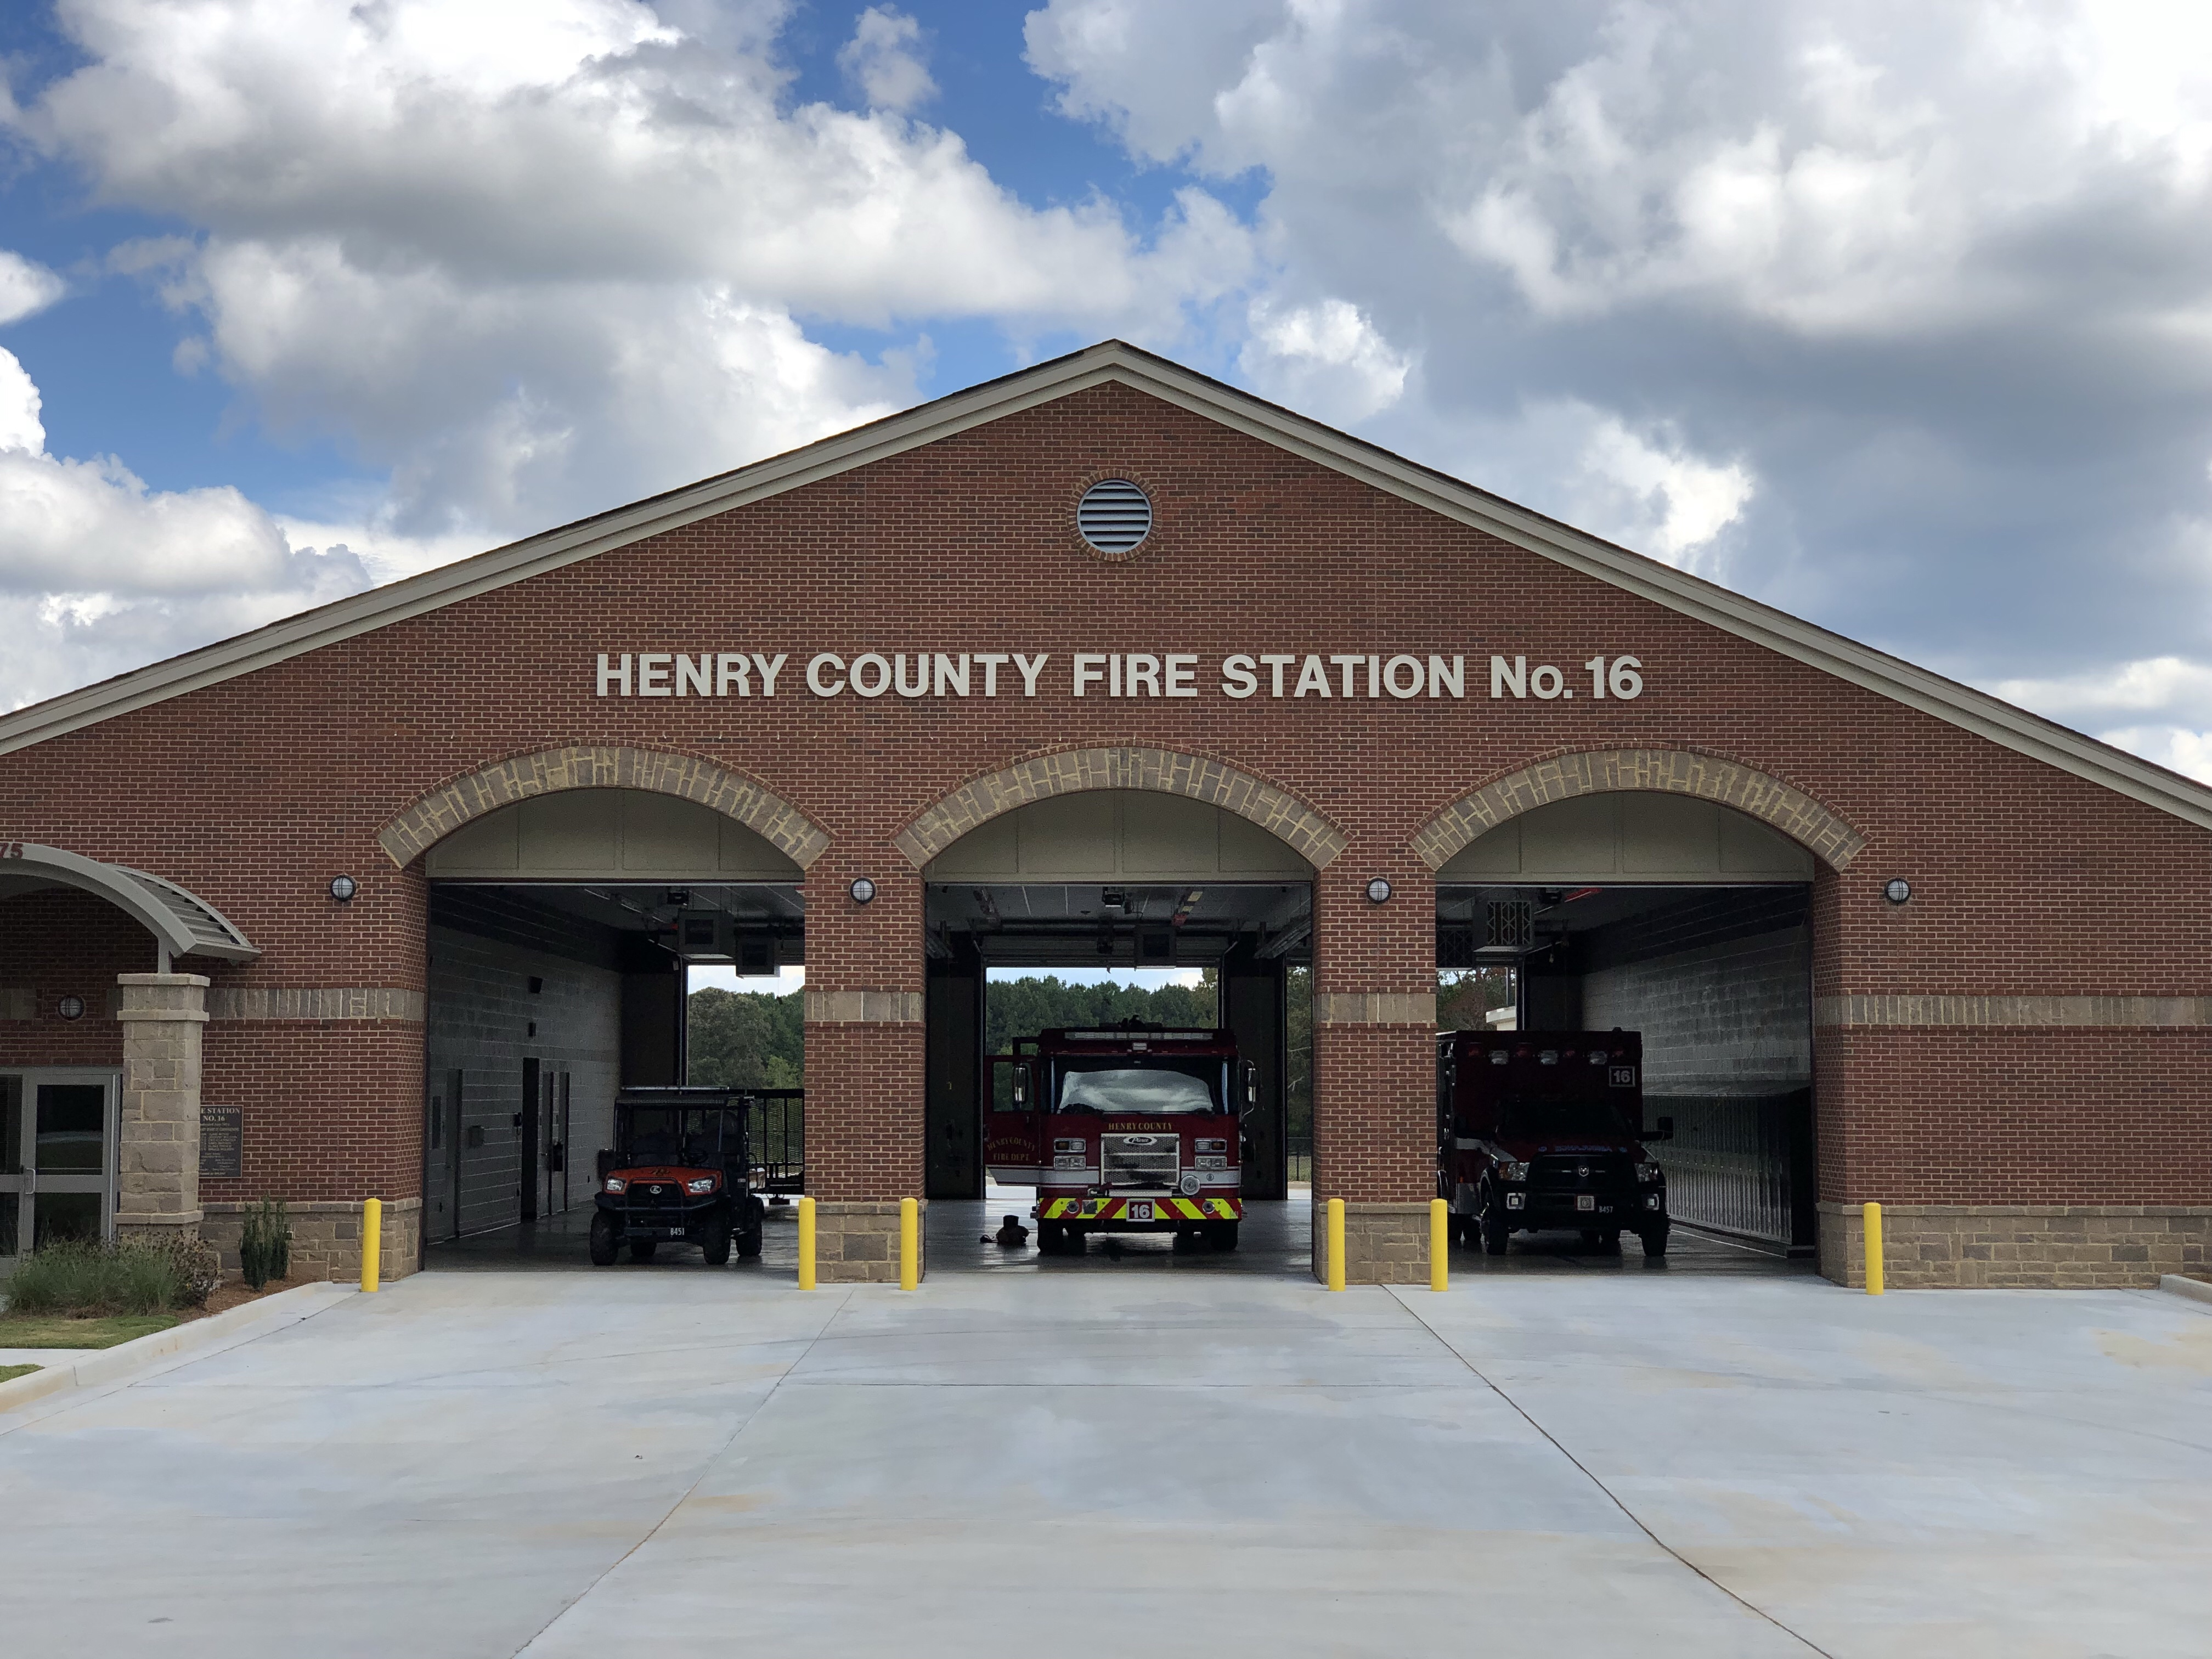 Photo of Henry County Fire Station 16 in Kelleytown (staff photo)